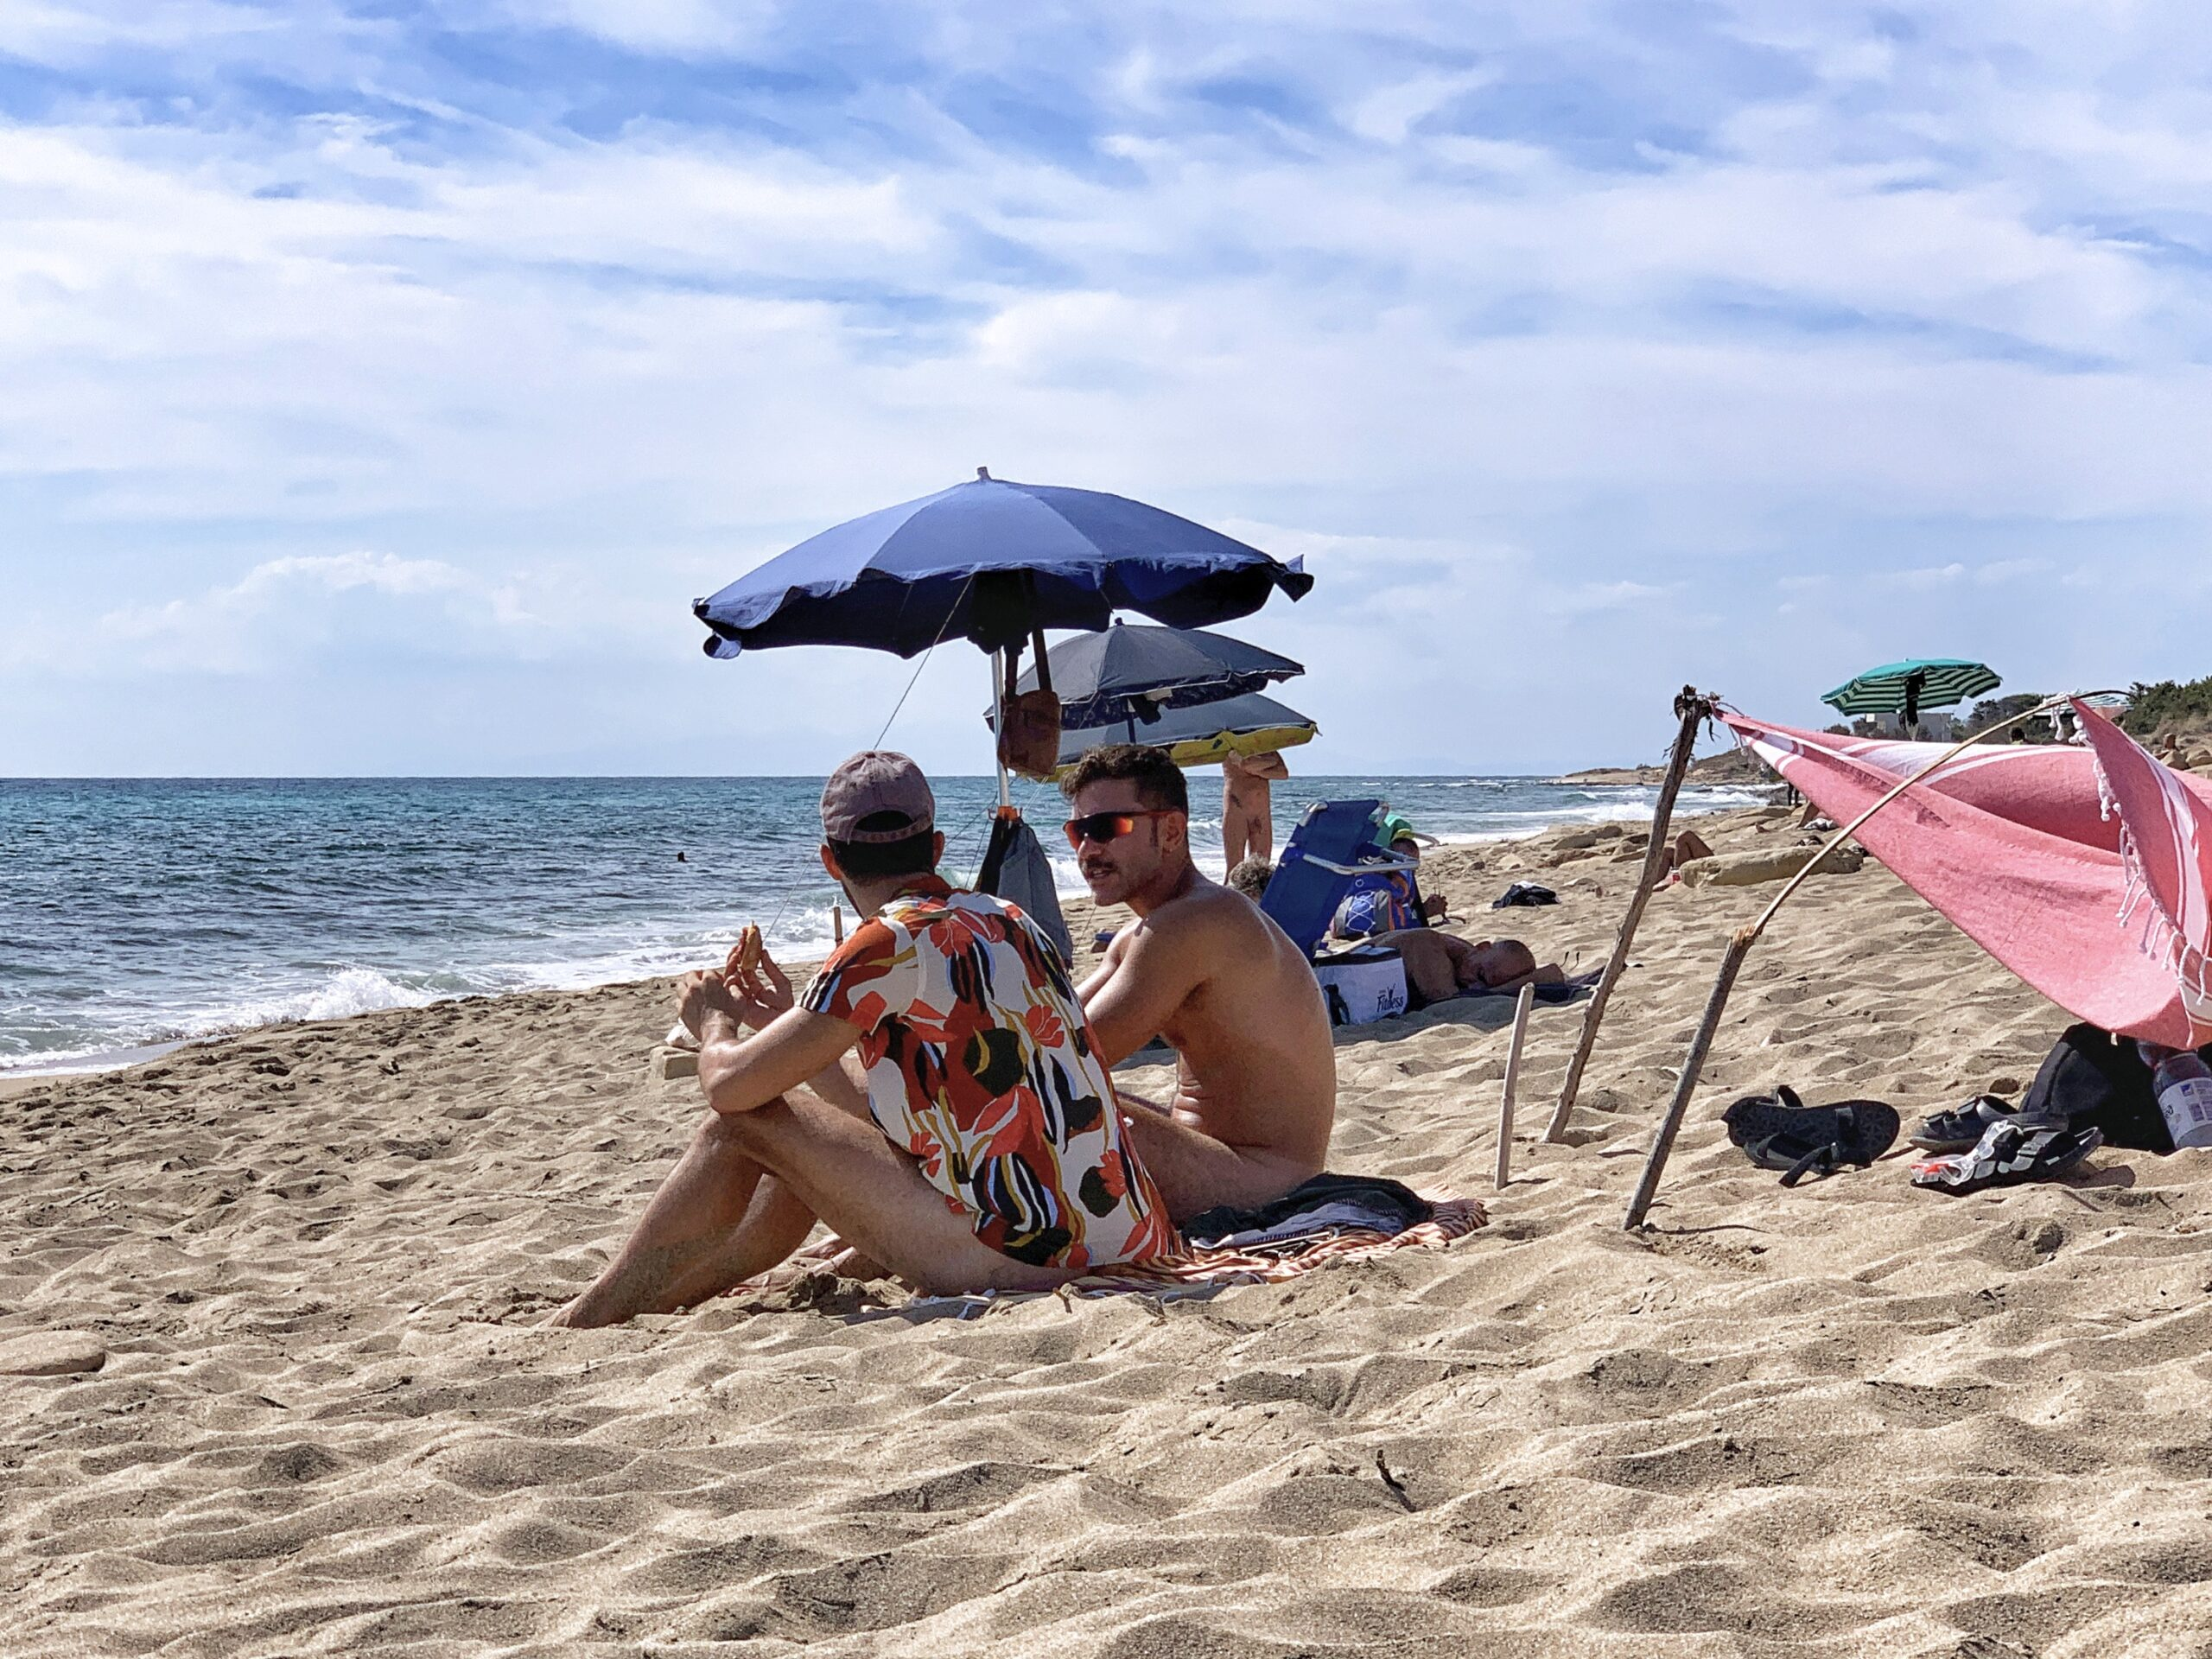 Spiaggia d'Ayala near Campomarino is one of Puglia's top nudist naturist gay beaches. Read the Big Gay Podcast from Puglia Guide to Gay Beaches in Puglia; packed full of masculine, hot Italian guys